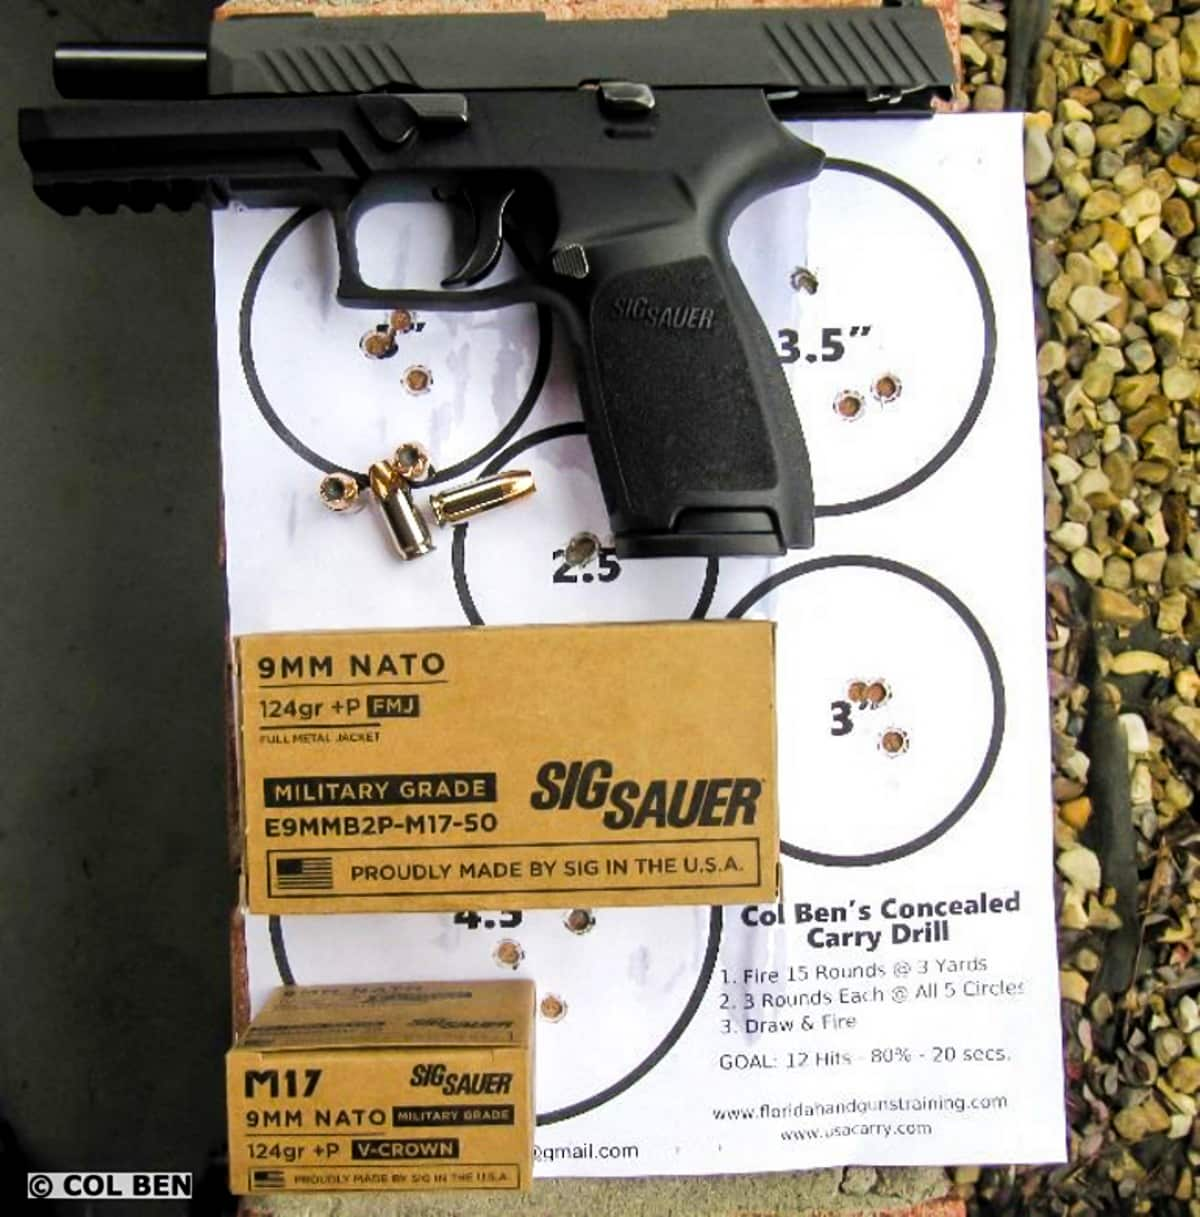 Field Testing Sig Sauer's New M17 9mm +P Ammo - USA Carry